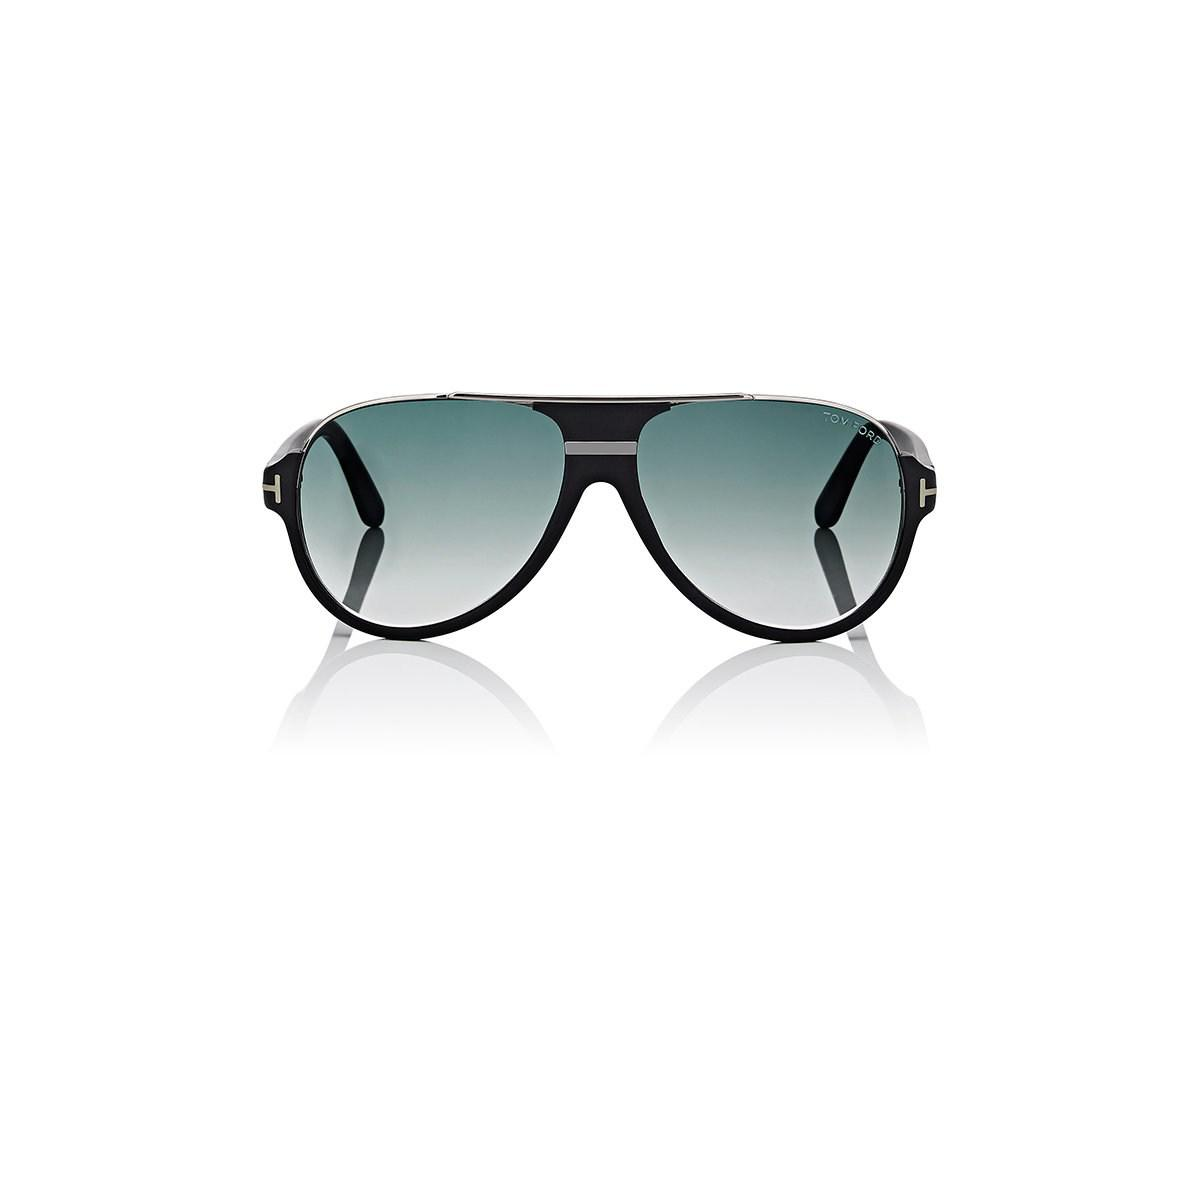 6f183ad7a861 Tom Ford. Men s Blue Dimitry Sunglasses. £325 From Barneys New York